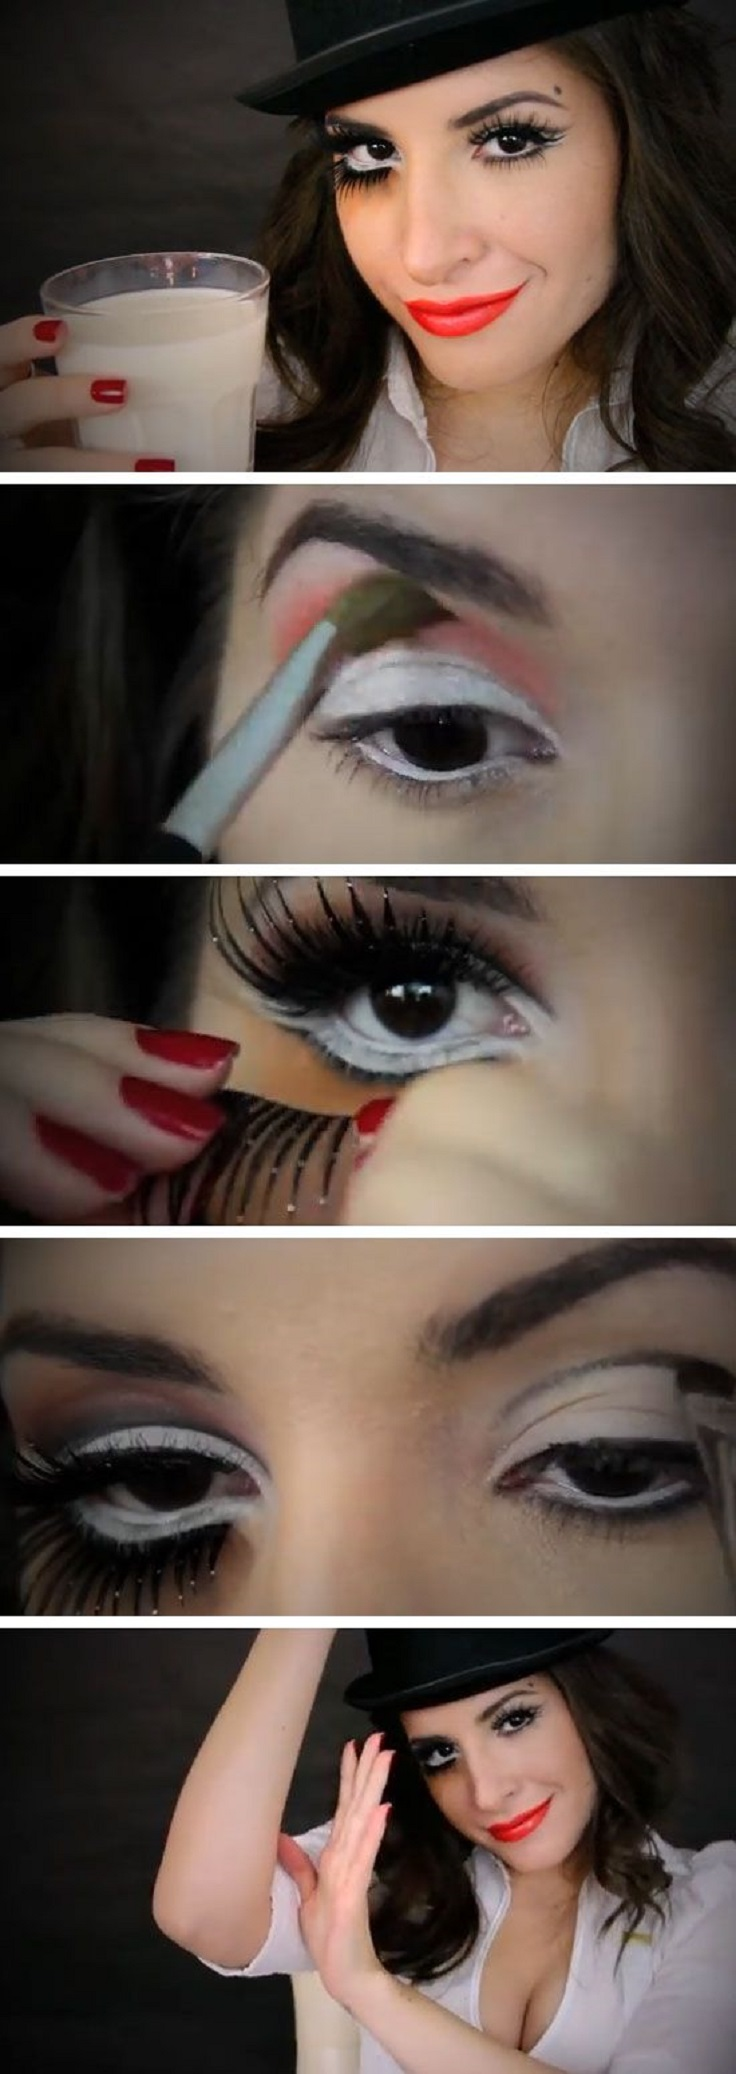 Top 10 Last Minute Makeup Tutorials For Halloween - Top Inspired